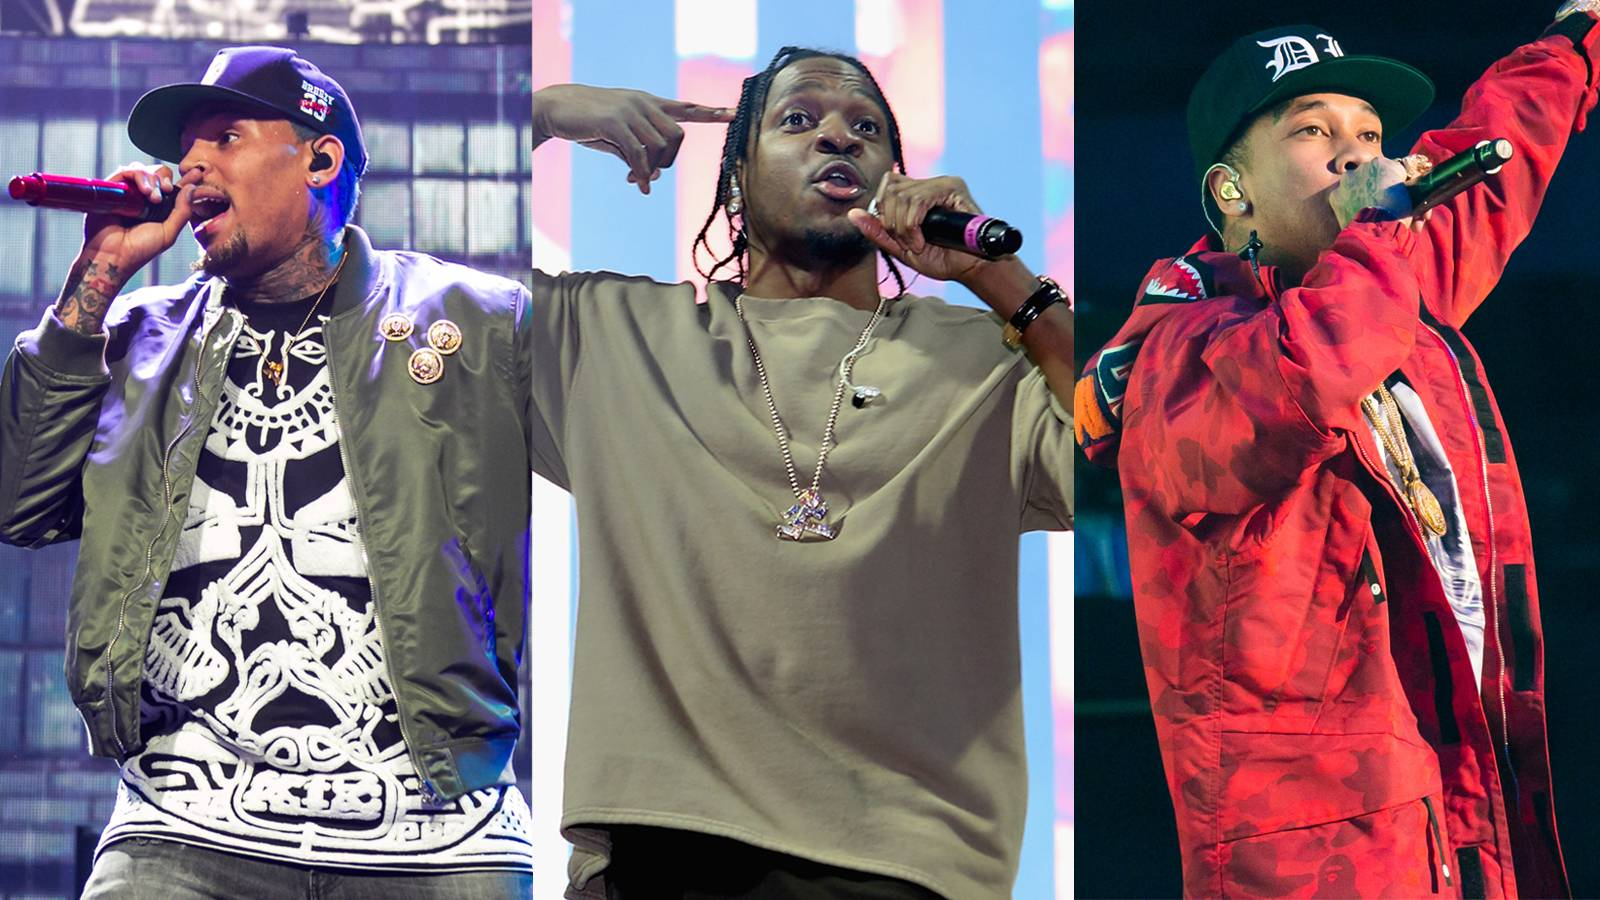 """'D.G.I.F.U. (Don't Get It F**ked Up),' Featuring Pusha T - Pusha T joins T-Raww and Brown as they flip the Doc's classic """"Forgot About Dre"""" and Bone and B.I.G.'s """"Notorious Thugs."""" With their minks dragging the floor on this theme song for stunting, Tyga sets it off on the haters with, """"Ya'll know me, the still same OG, young T-Y-G /Hated on by most these n****s /But I still keep s**t on n****s low-key /I don't f**k with you to the third degree.""""(Photos from left: Scott Legato/Getty Images, Jerritt Clark/Getty Images for Roc Nation, Scott Legato/Getty Images)"""